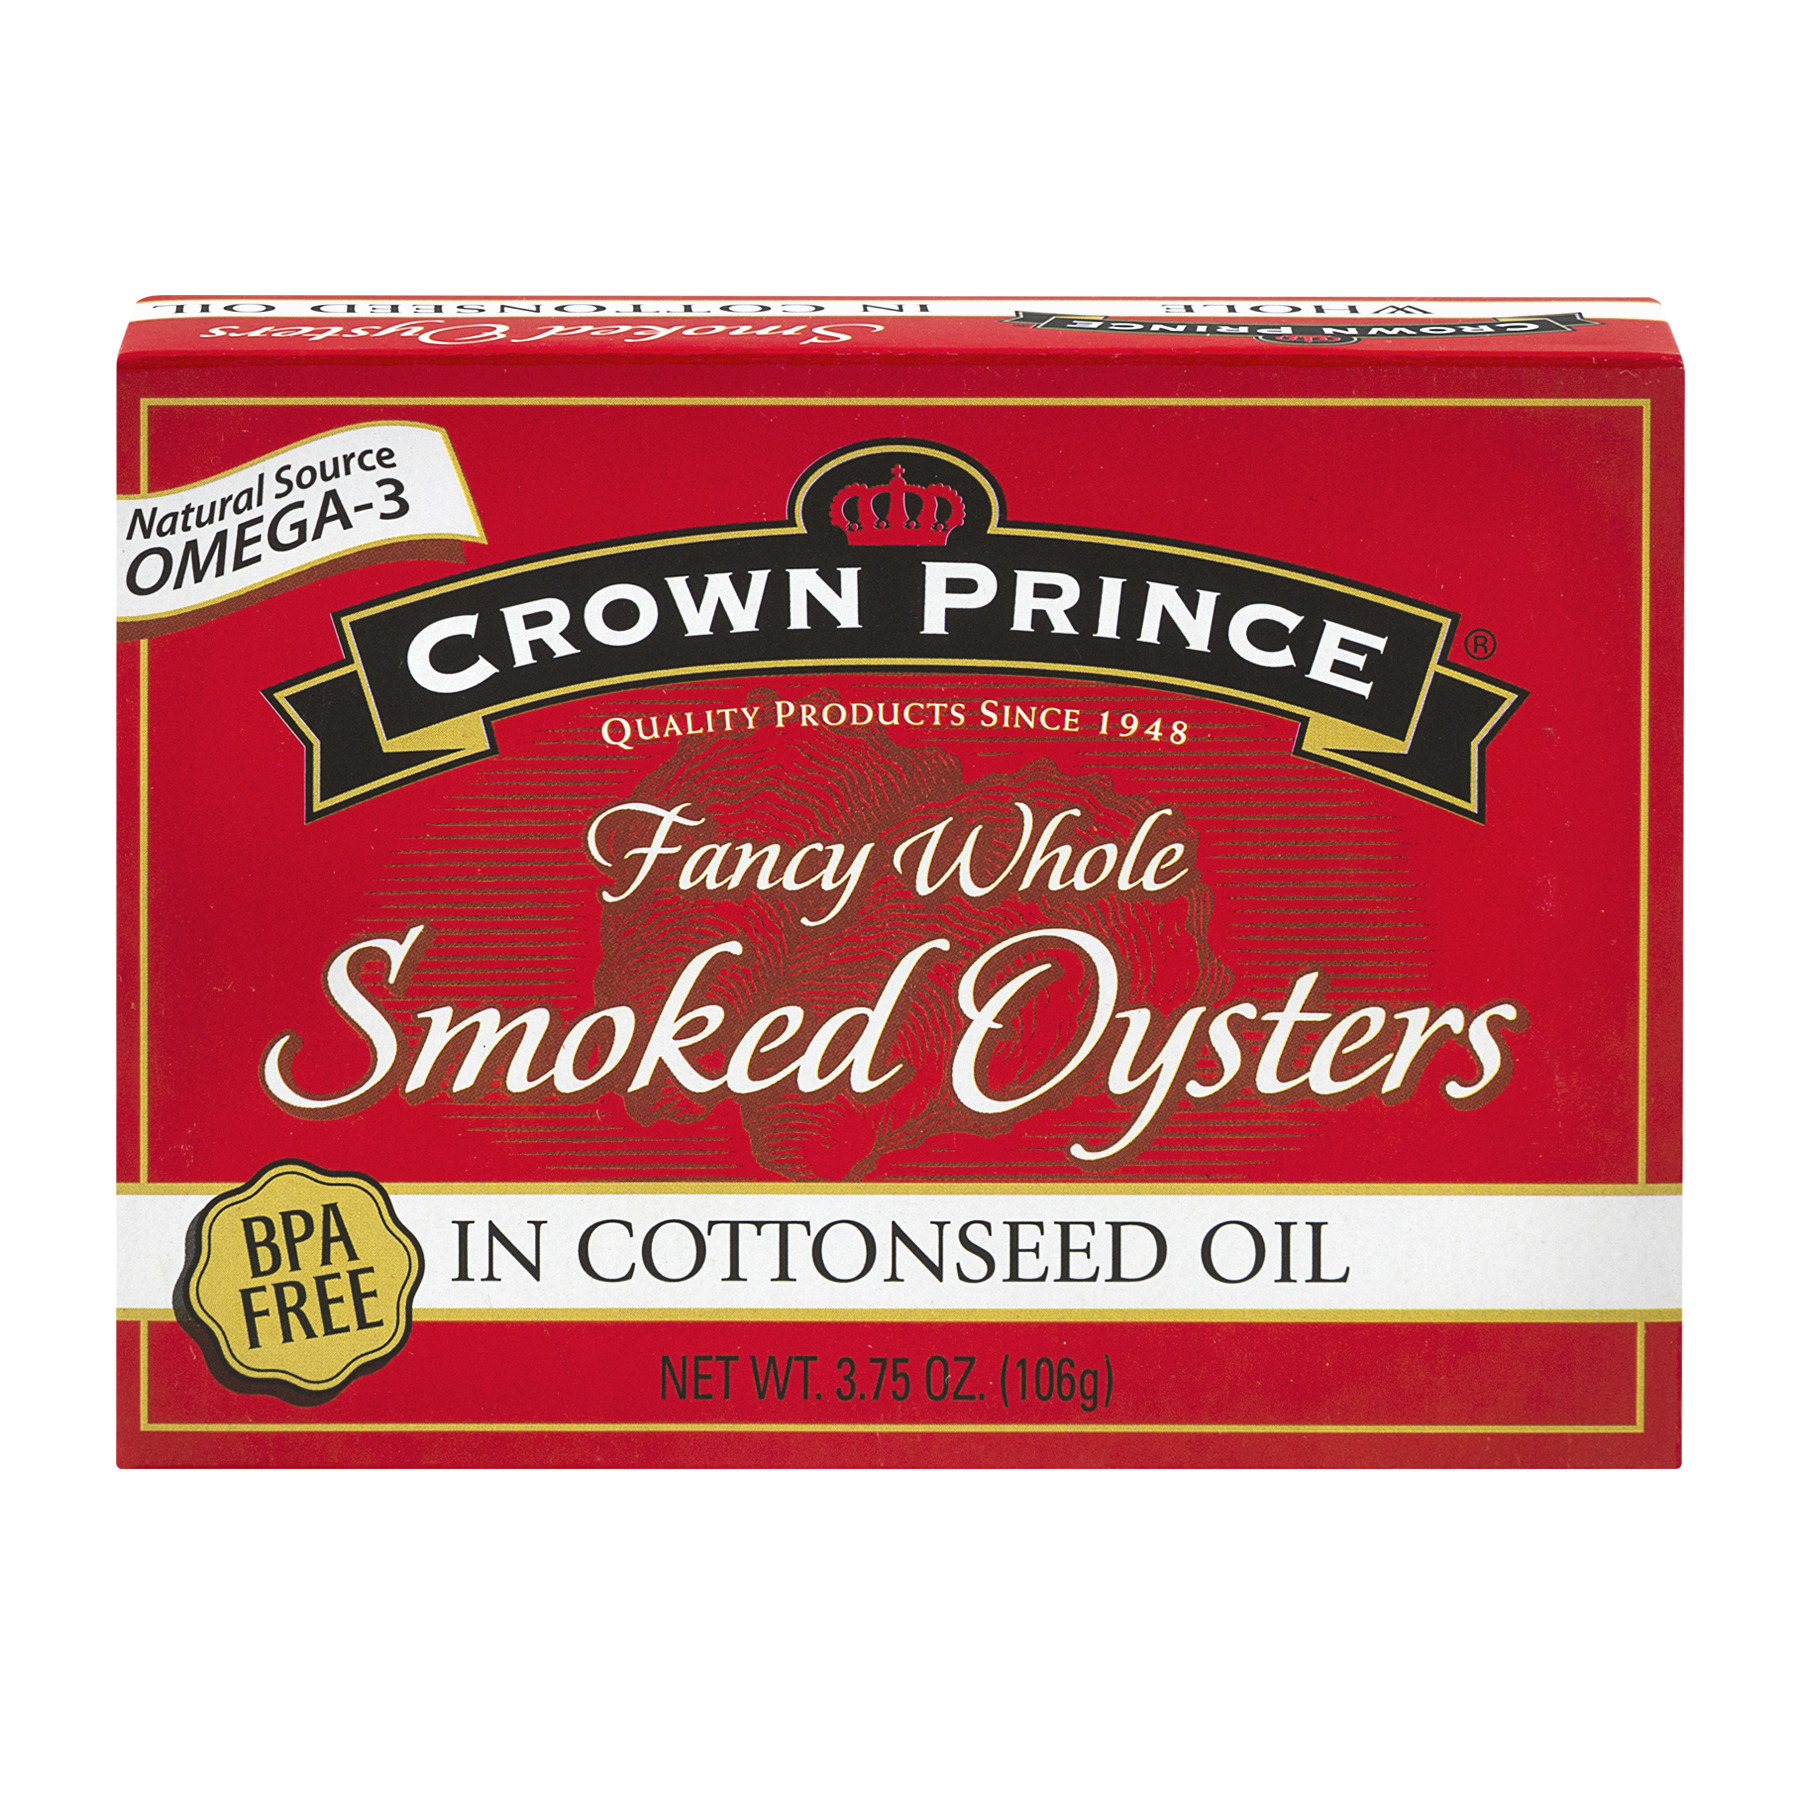 Crown Prince Fancy Whole Smoked Oysters In Cottonseed Oil, 3.75 OZ by Crown Prince